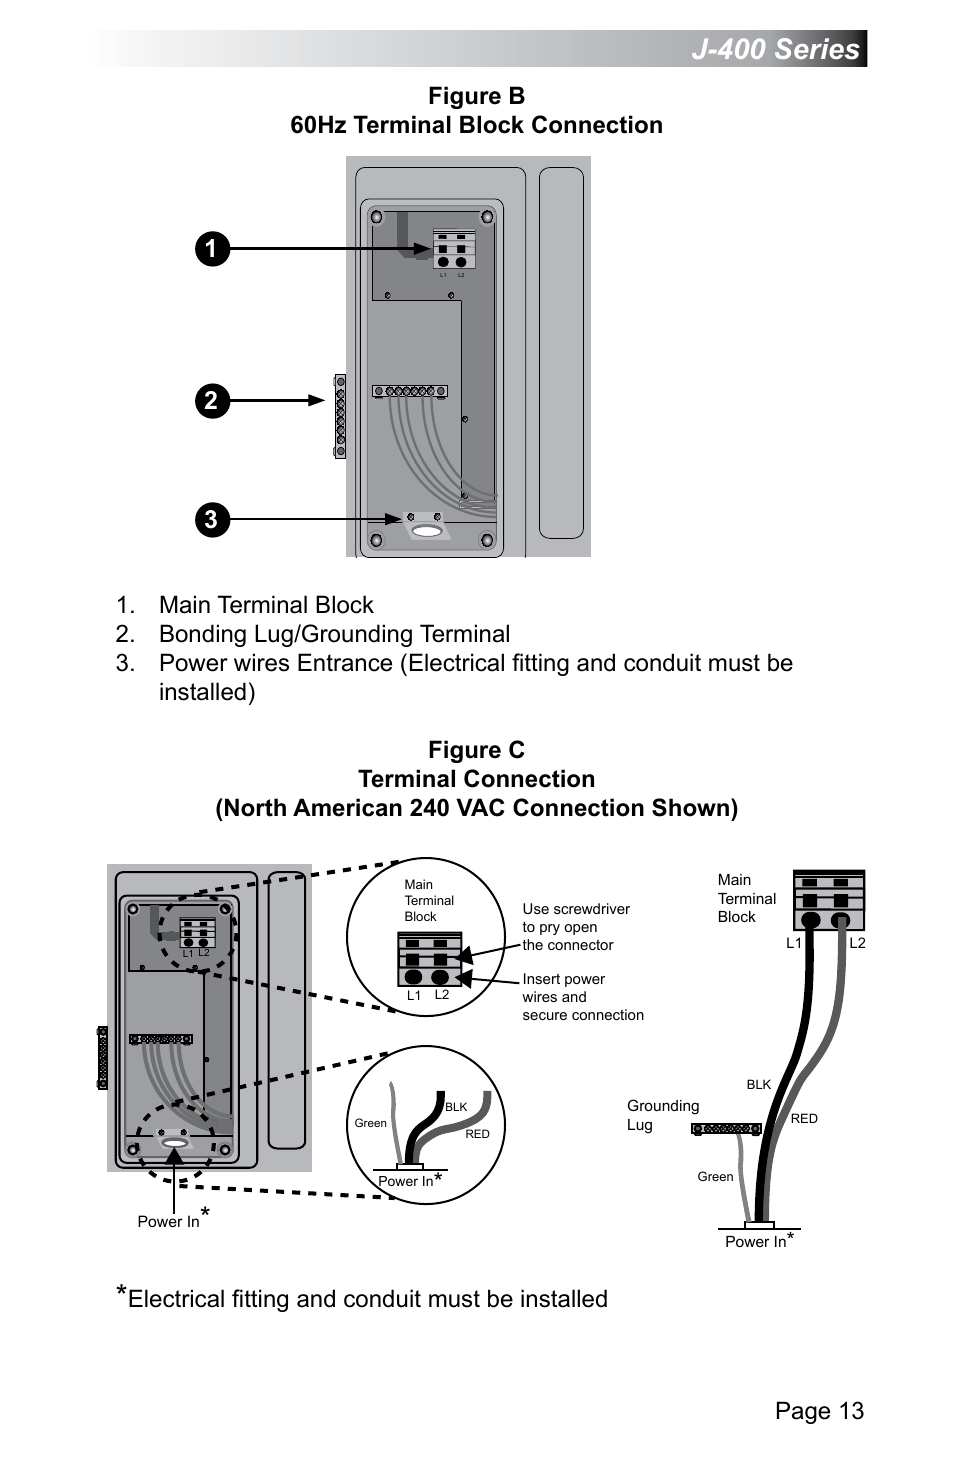 J-400 series, Page 13, Figure b 60hz terminal block